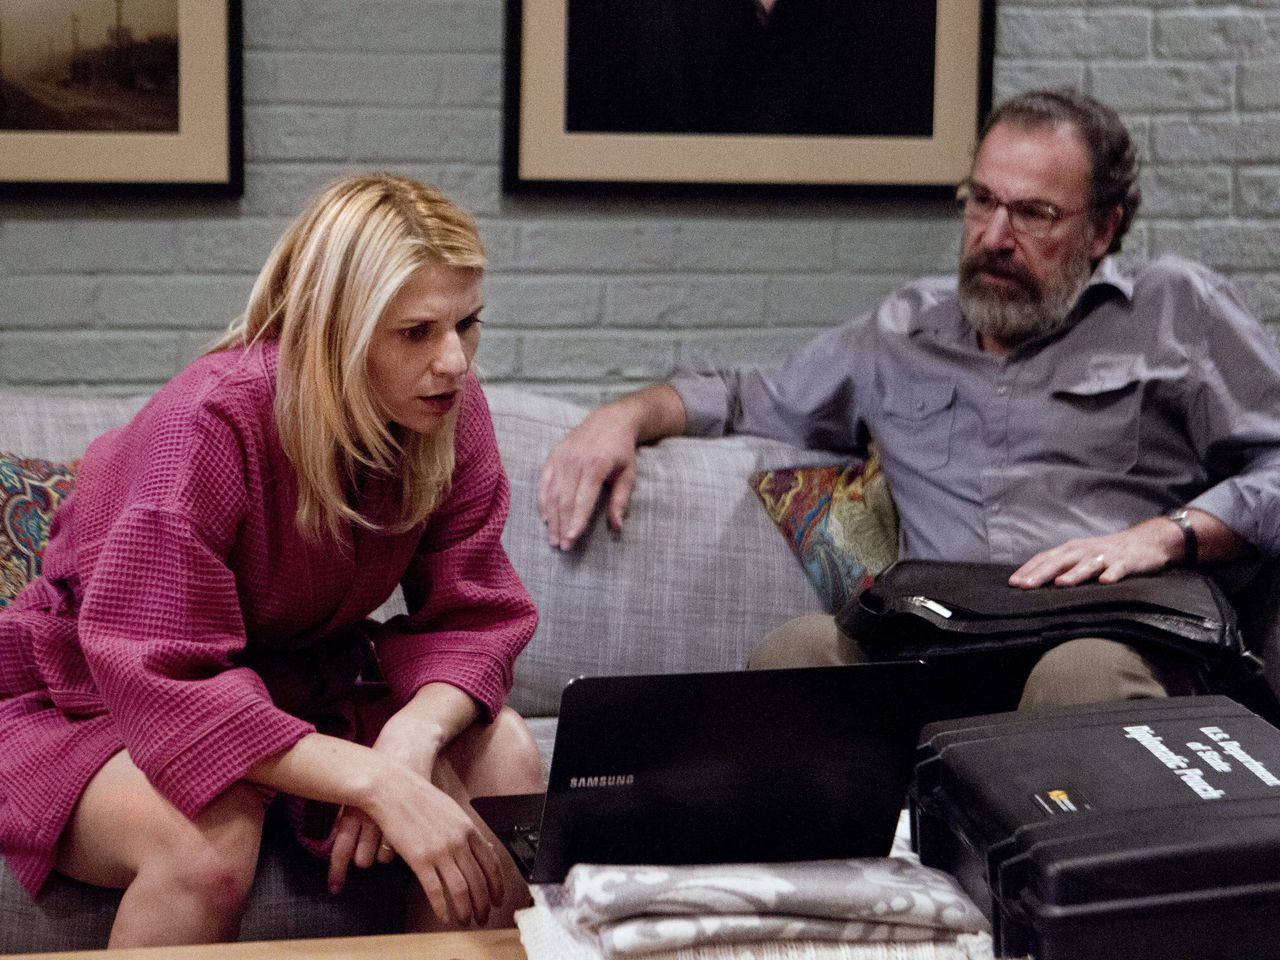 Claire Danes as Carrie Mathison and Mandy Patinkin as Saul Berenson in Homeland - Photo: Kent Smith/SHOWTIME - Photo ID: Homeland_203_3179CR